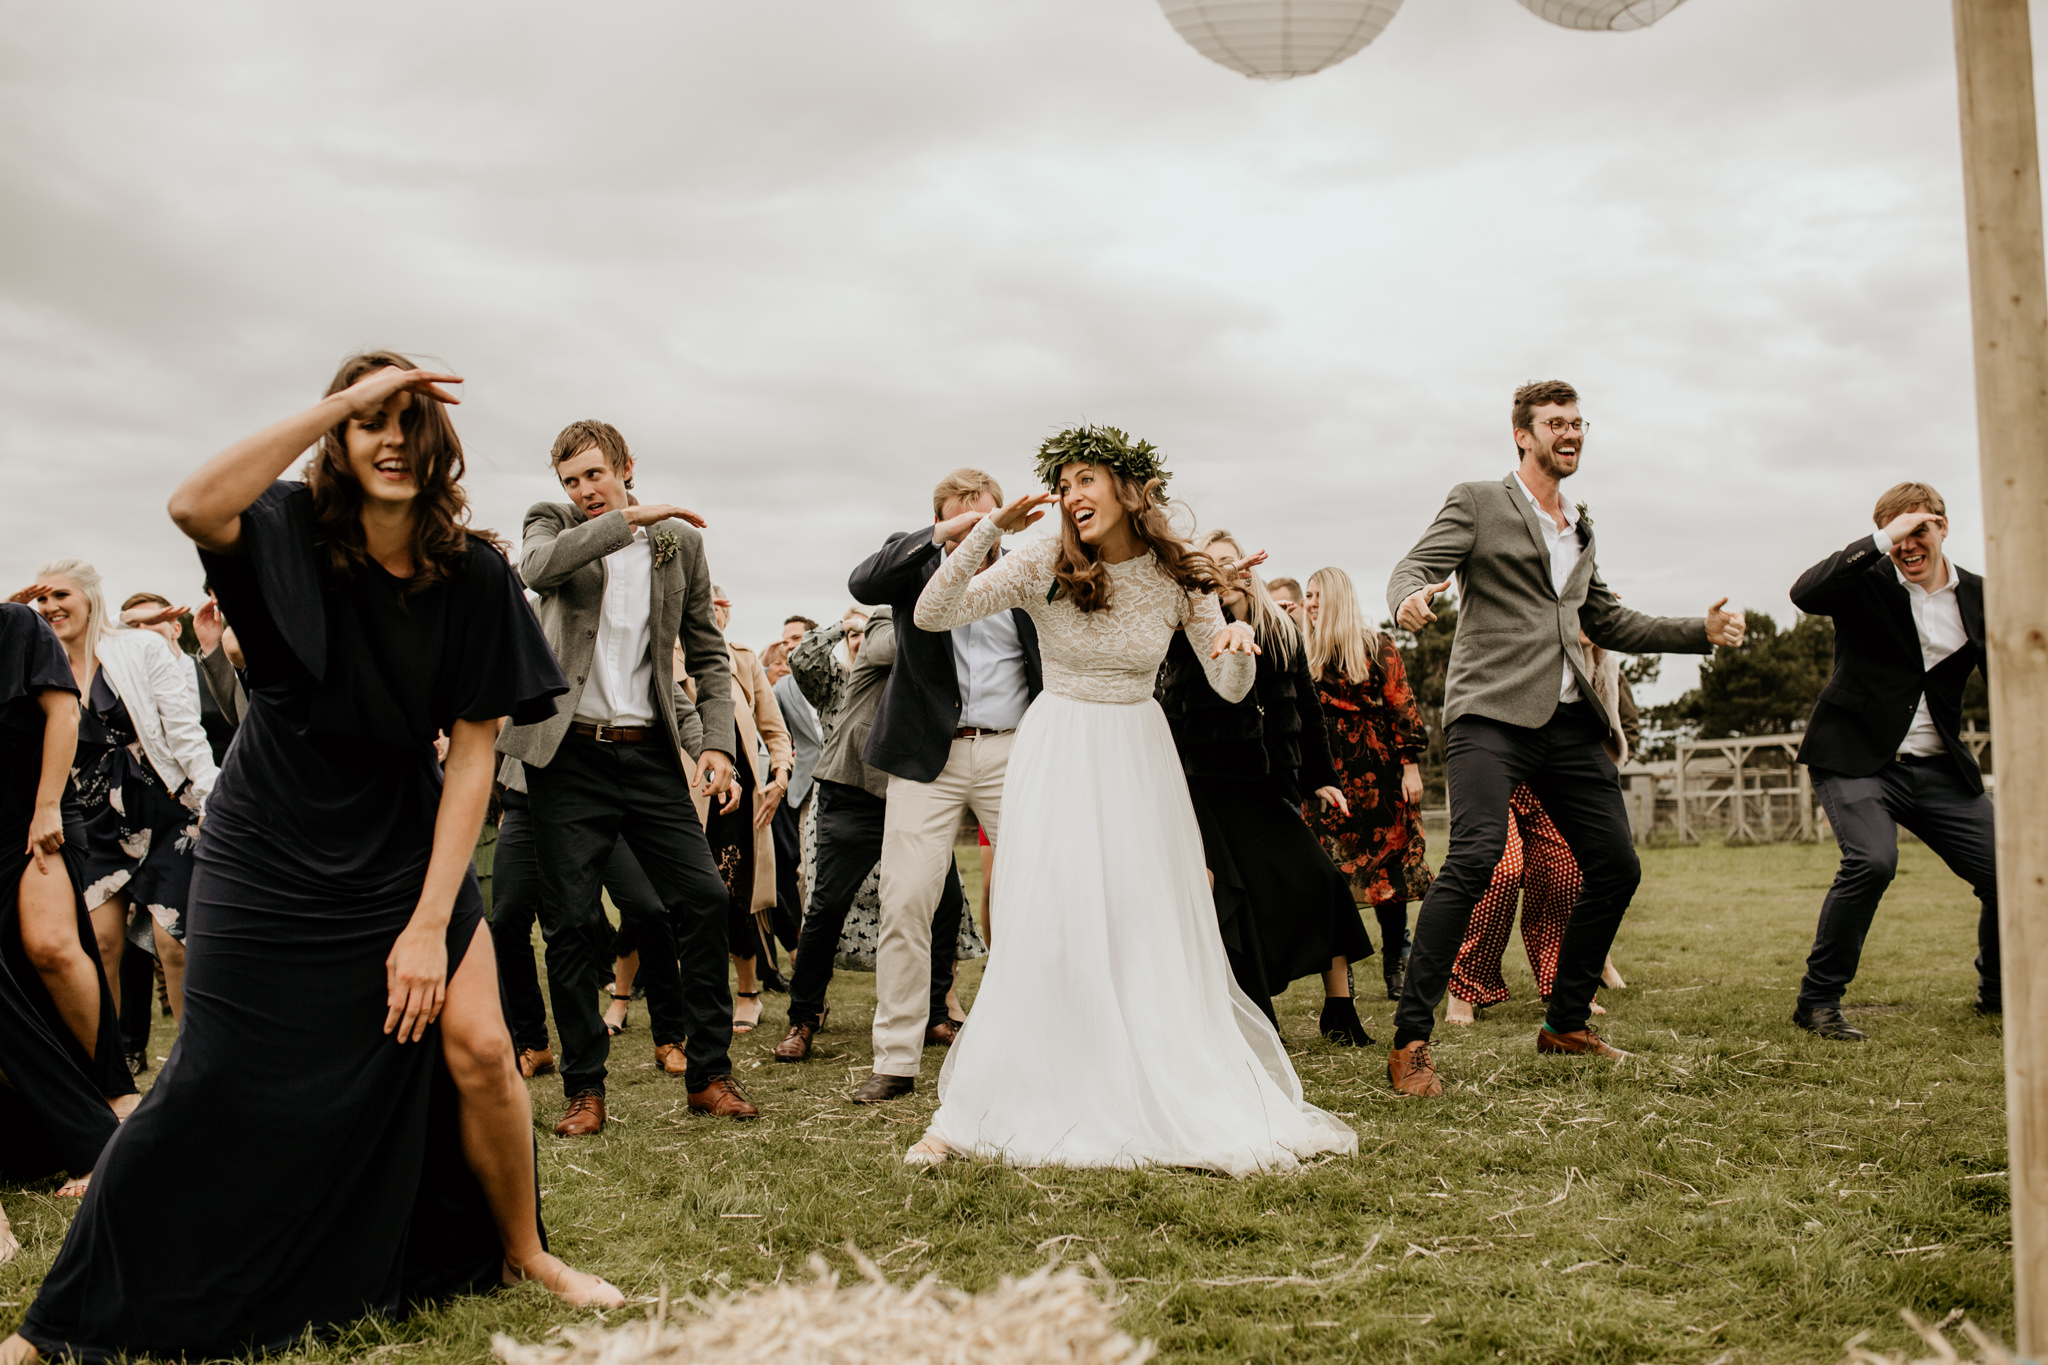 flash mob during a Scotland wedding